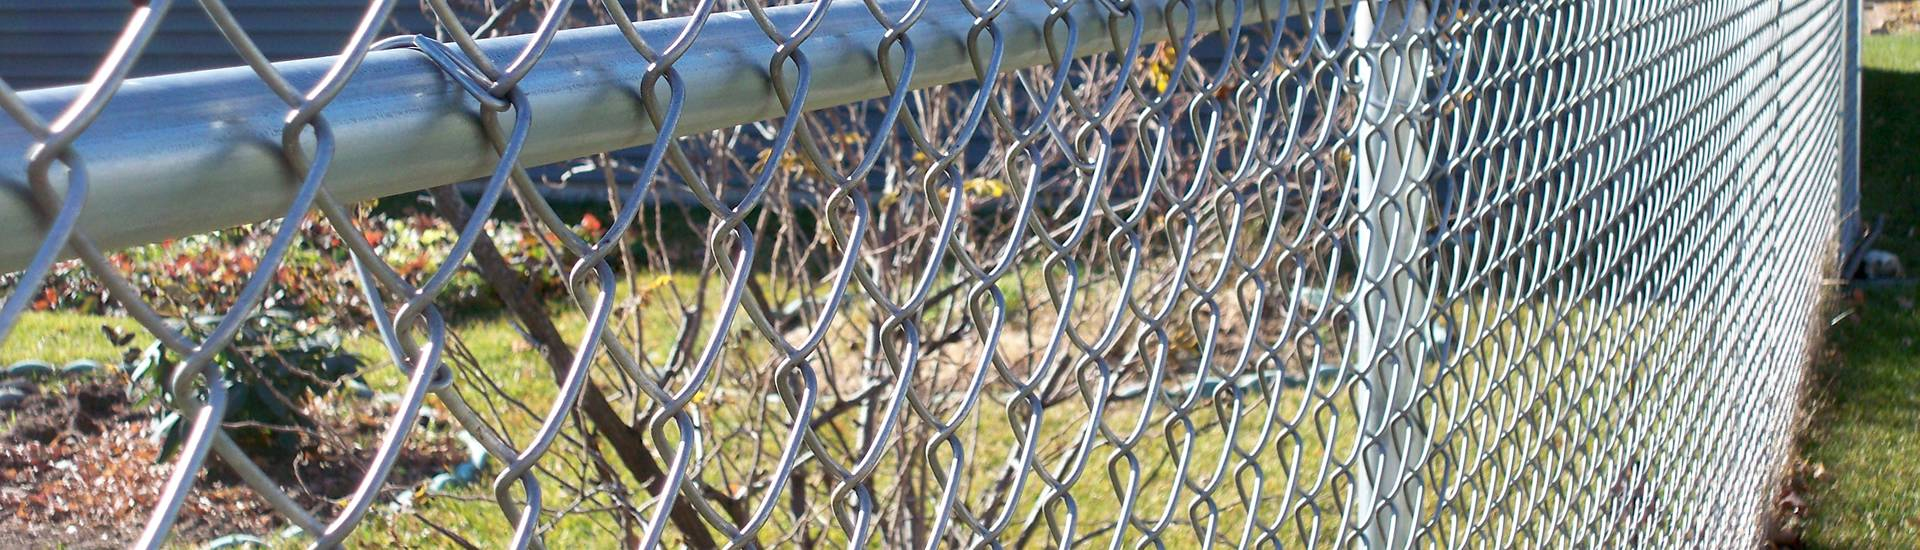 Galvanized chain link fences are installed in the backyard.